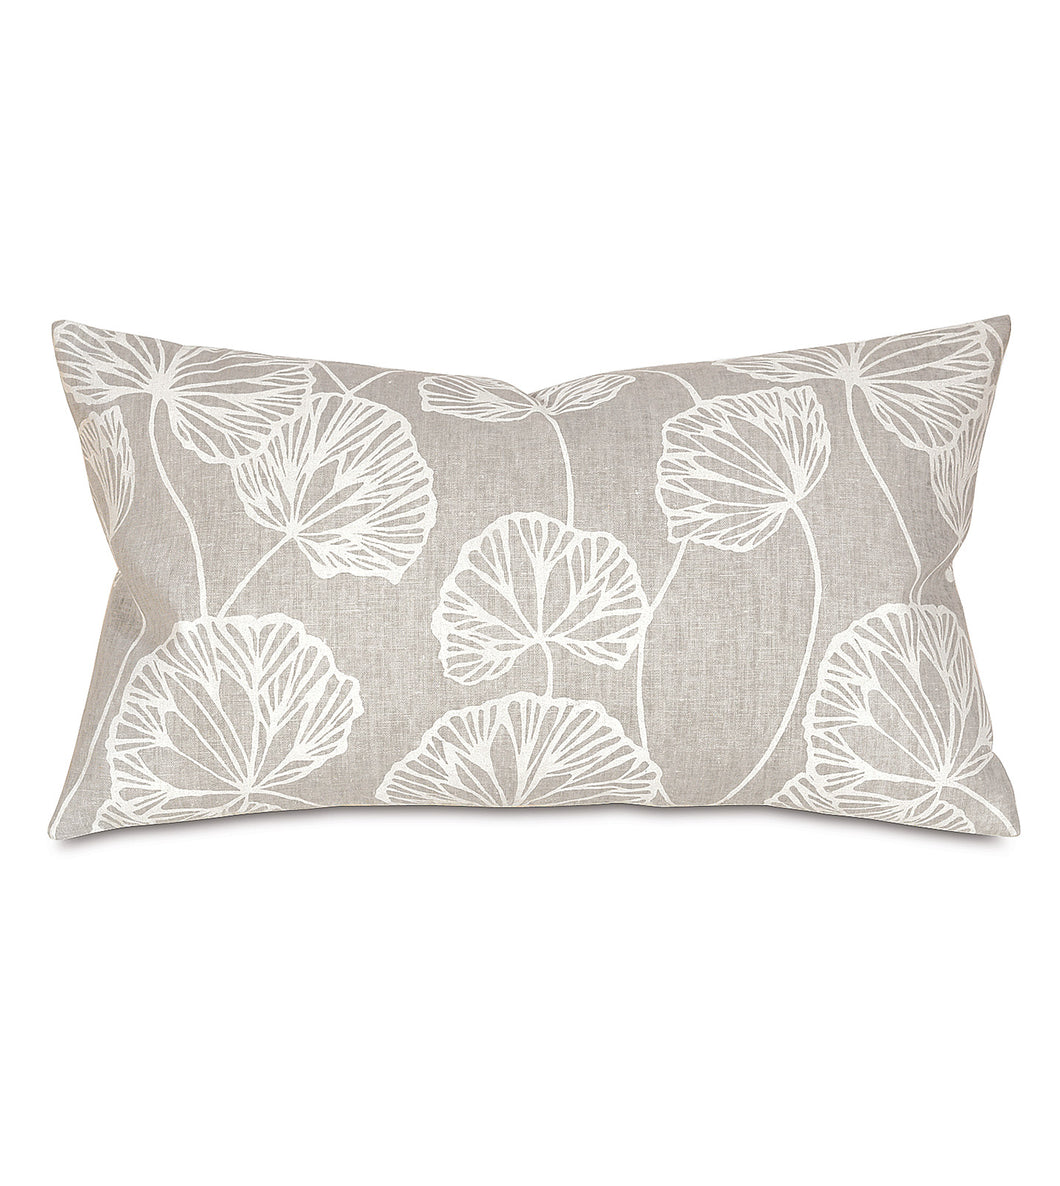 Light Gray Ginko Rustic Cabin Botanical Lumbar Pillow Knife Edge 15